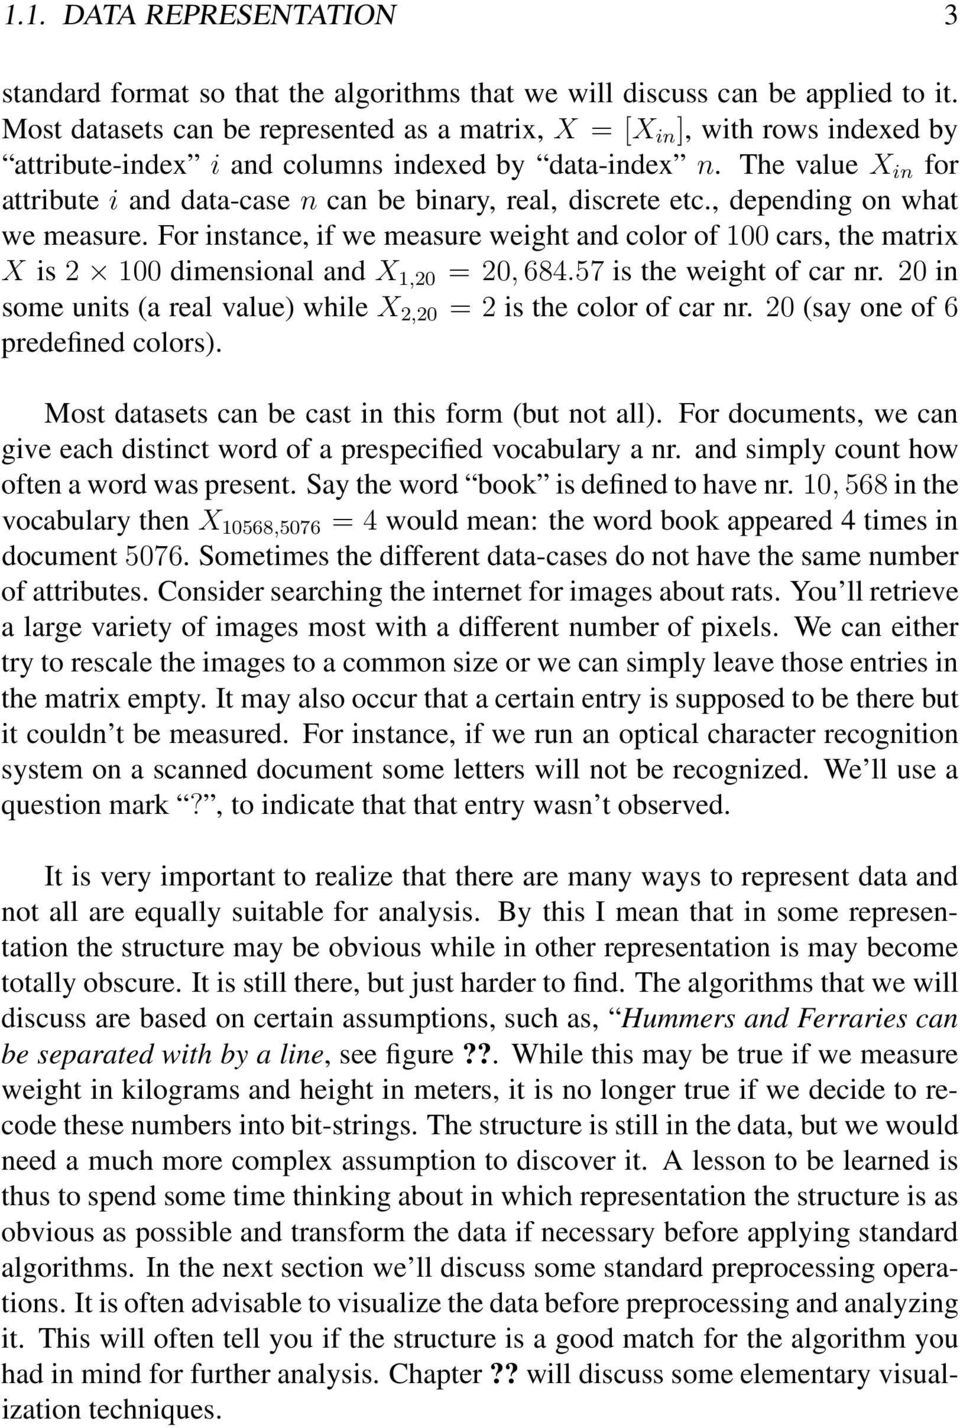 The value X in for attribute i and data-case n can be binary, real, discrete etc., depending on what we measure.